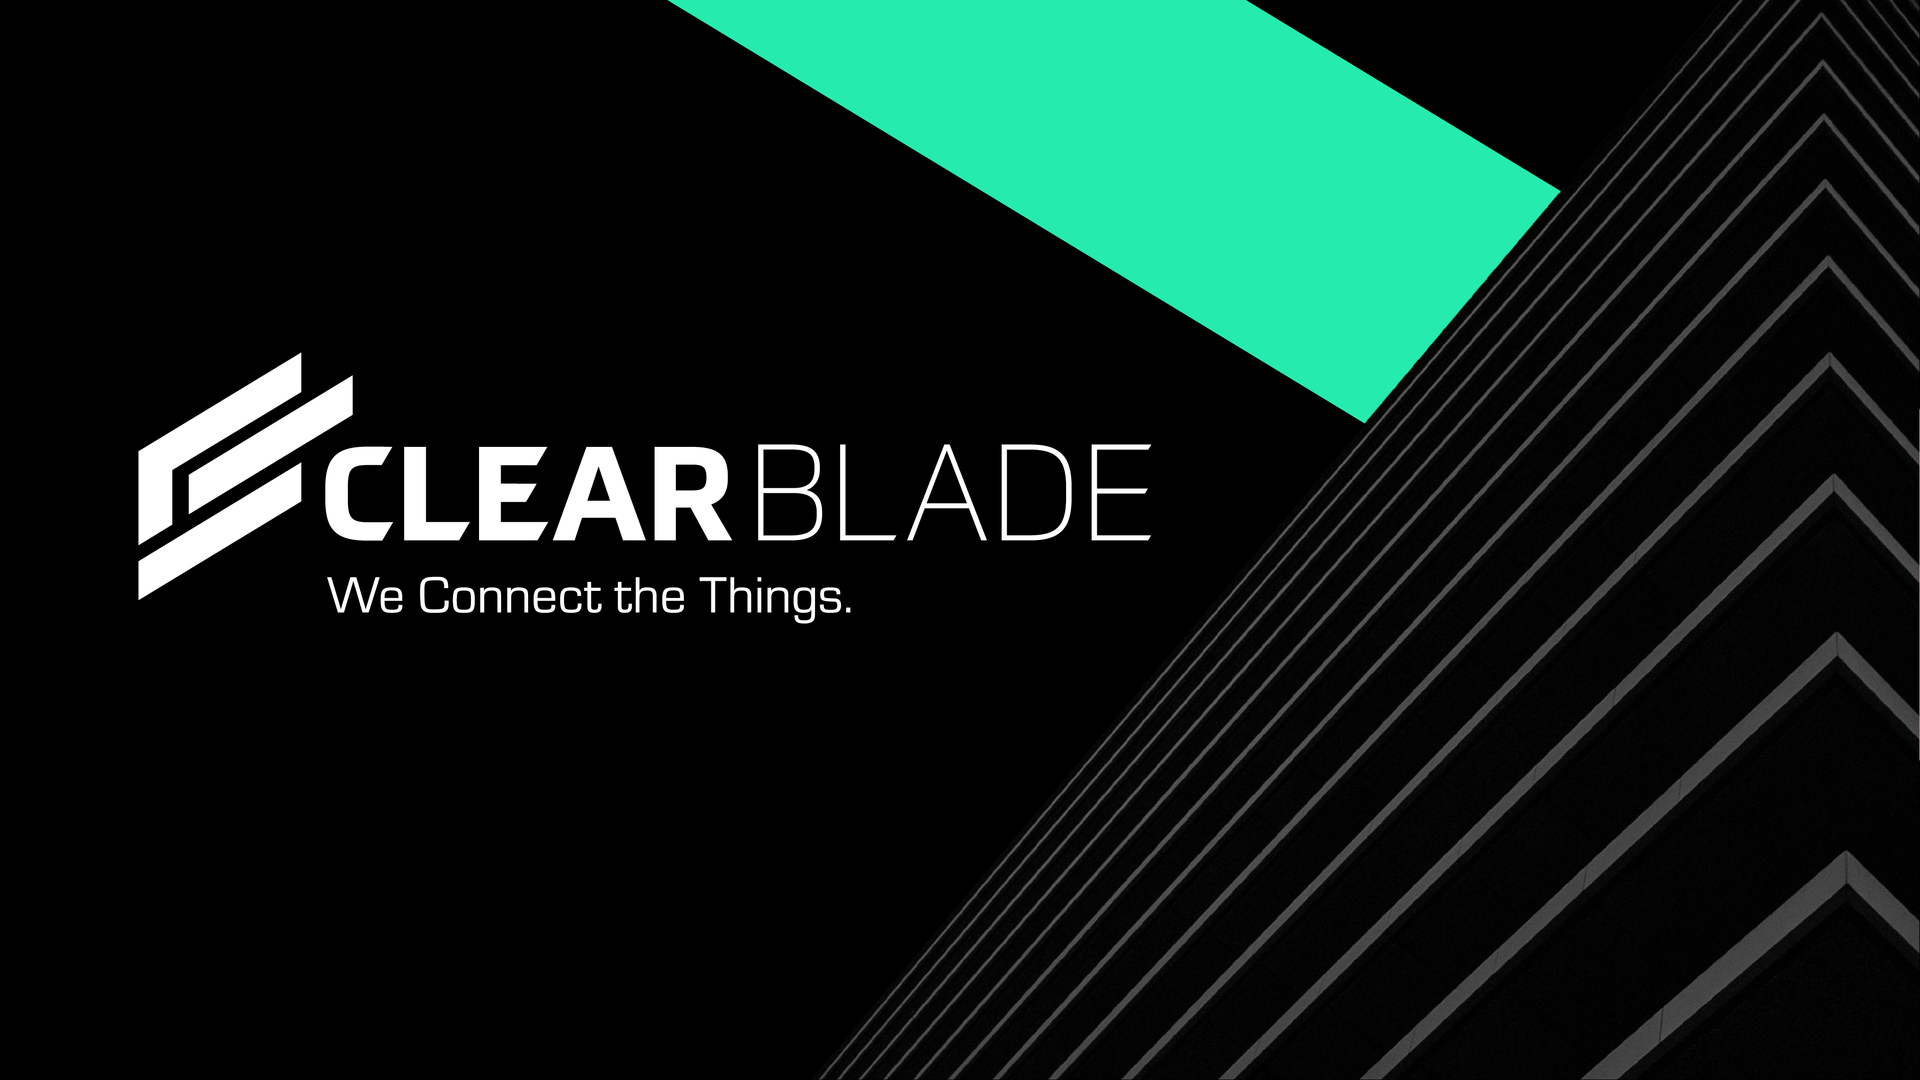 ClearBlade Branding